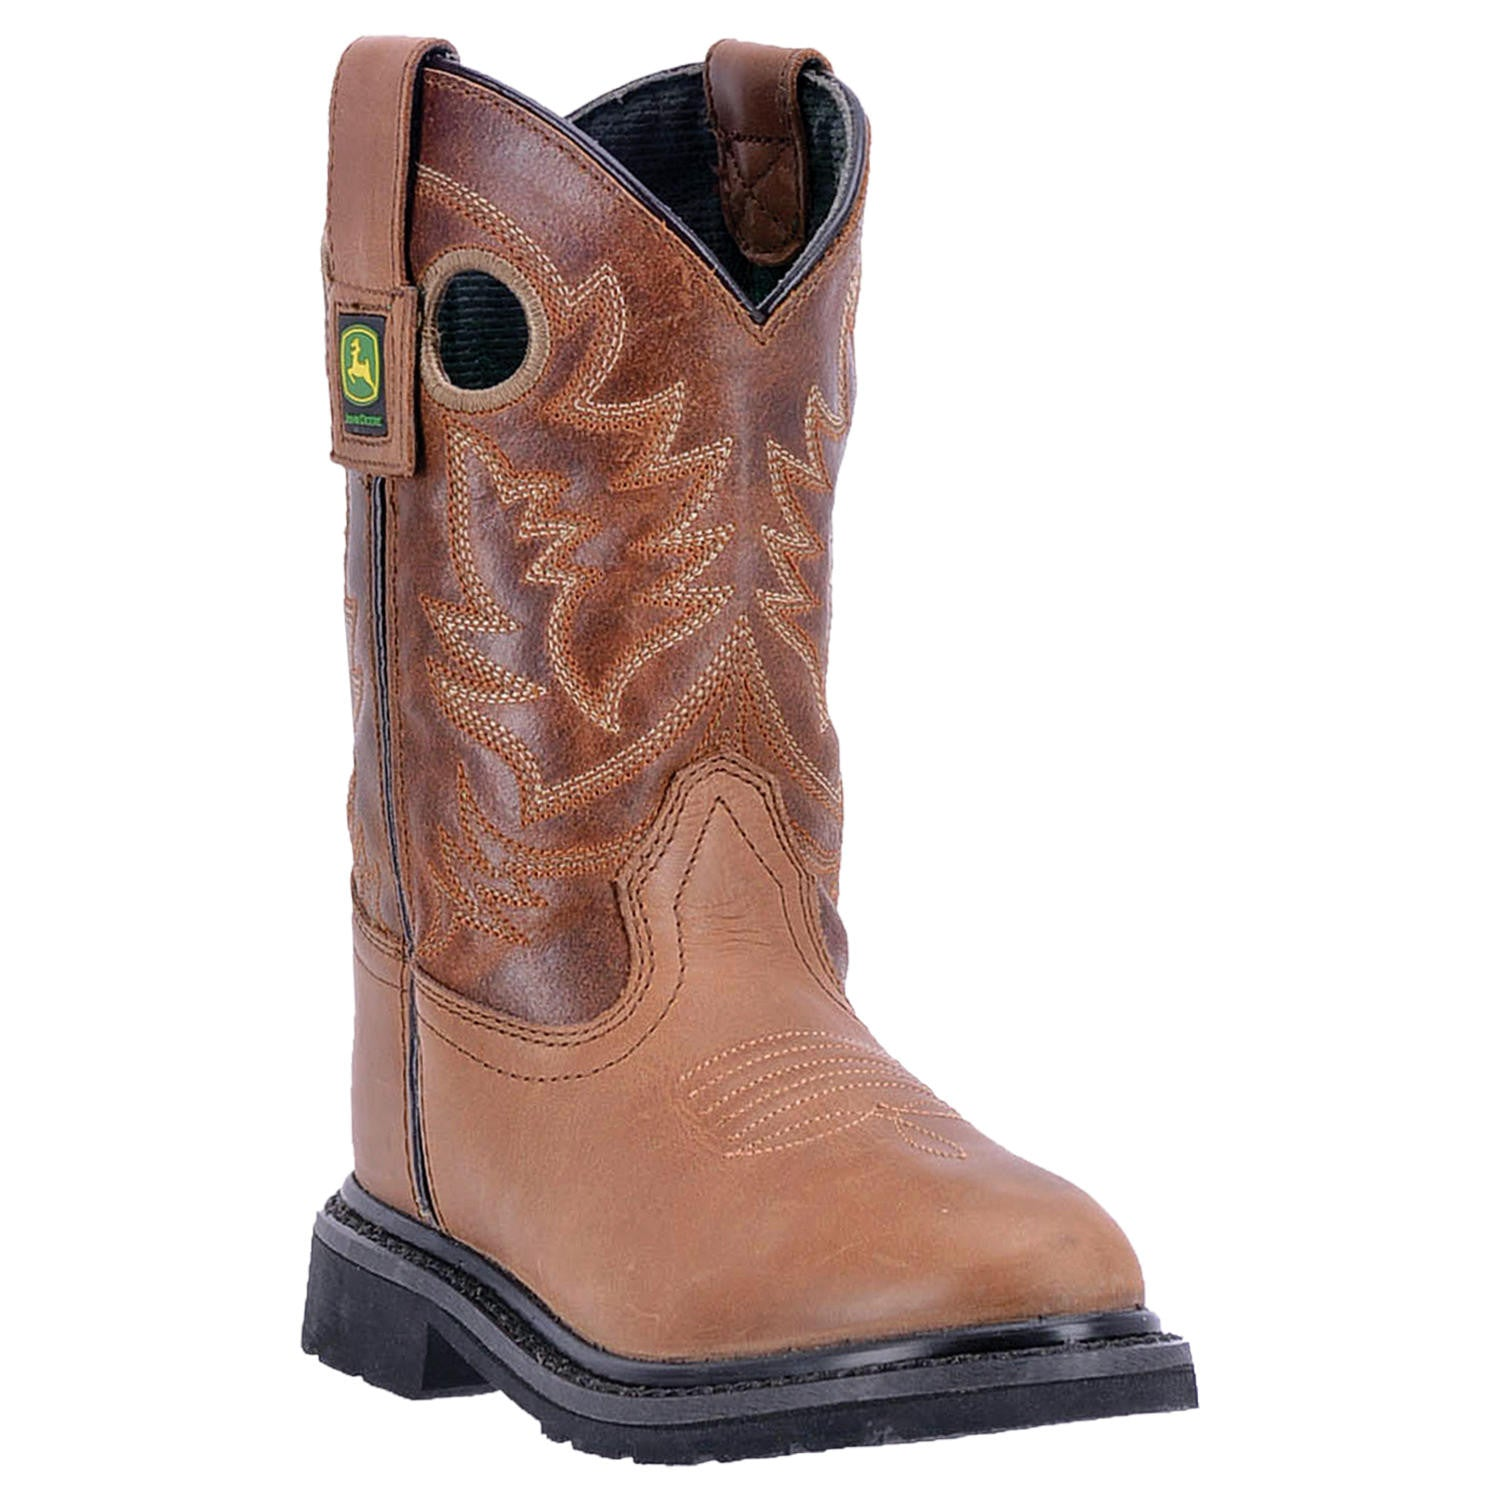 JOHN DEERE YOUTH'S  LEATHER JOHNNY POPPER YOUTH BROWN - TAN